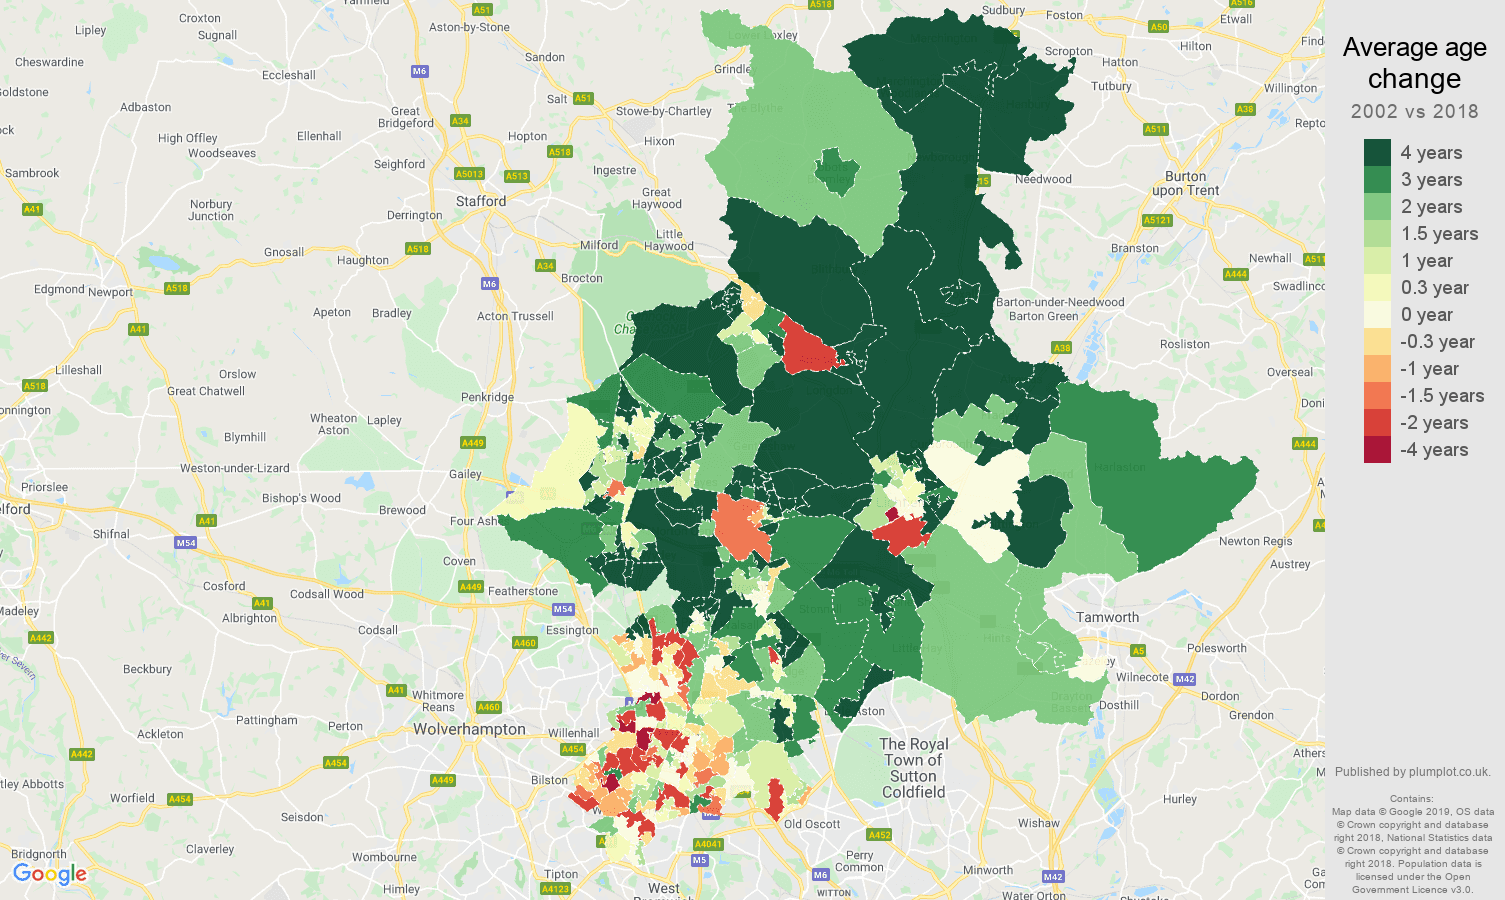 Walsall average age change map